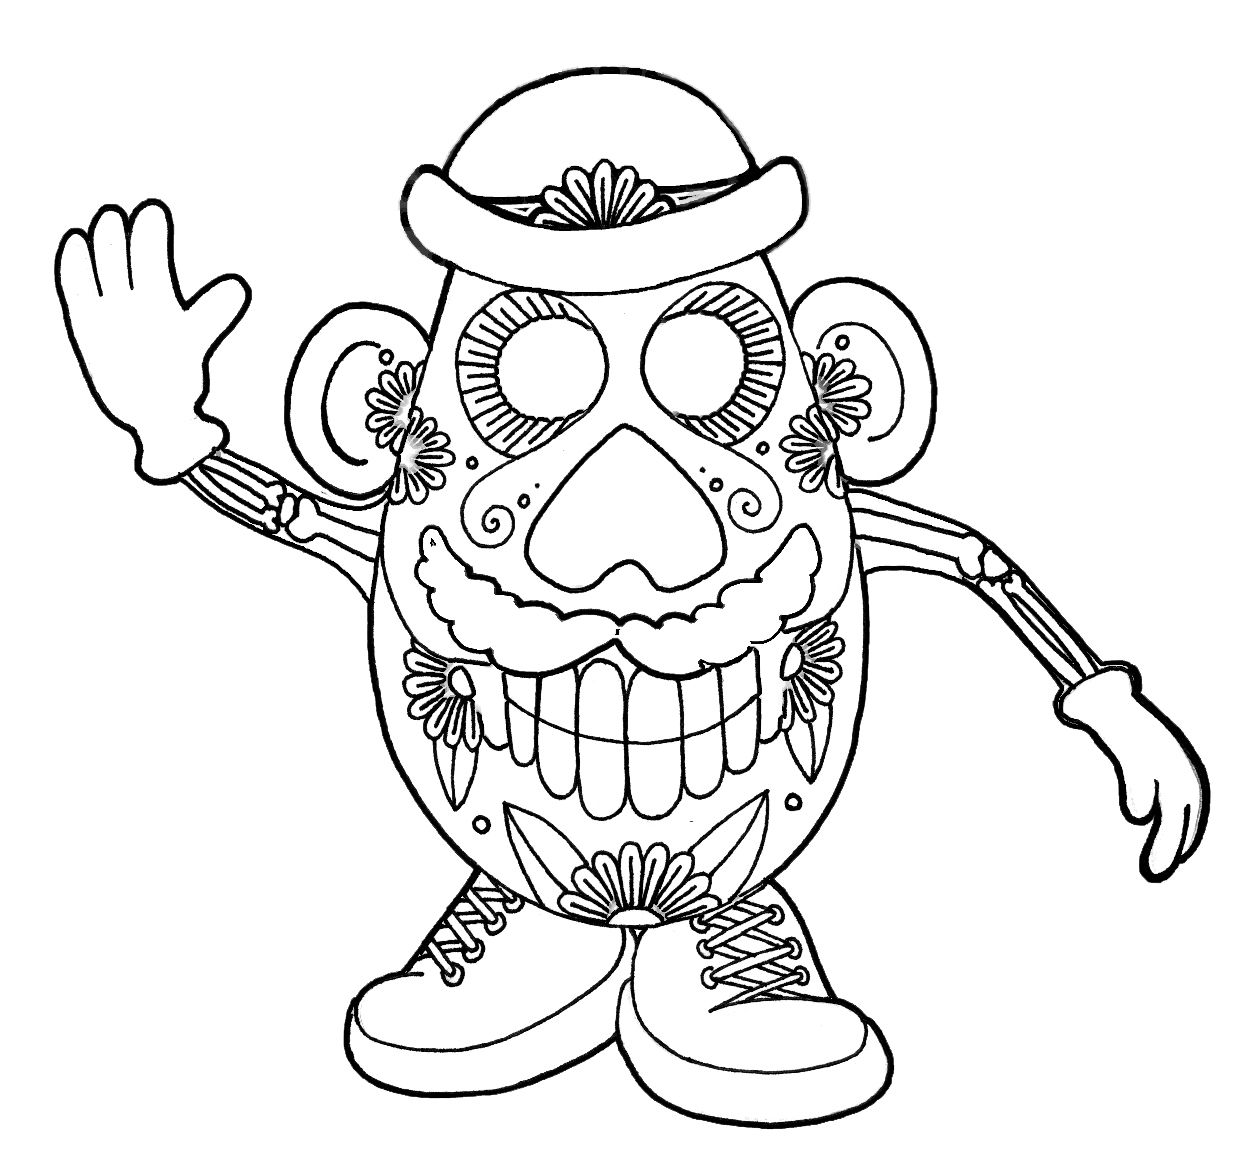 1259x1170 Limited Day Of The Dead Coloring Pages For Adults Sugar Skull Page